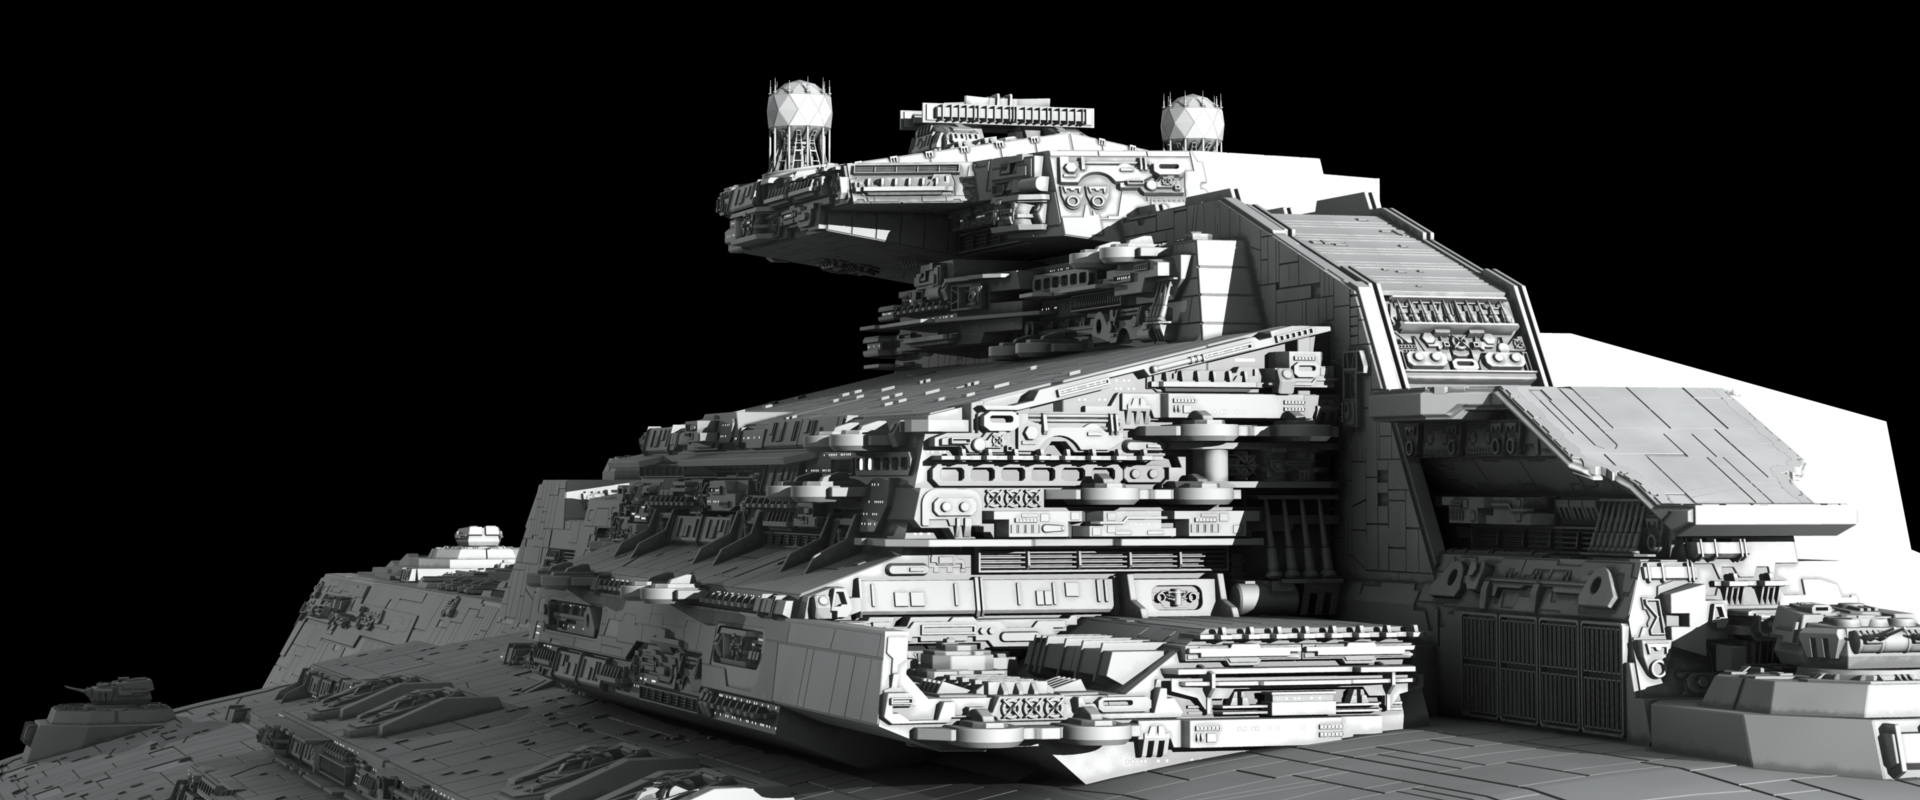 Sci Fi - Star Wars  - Star Destroyer Wallpaper